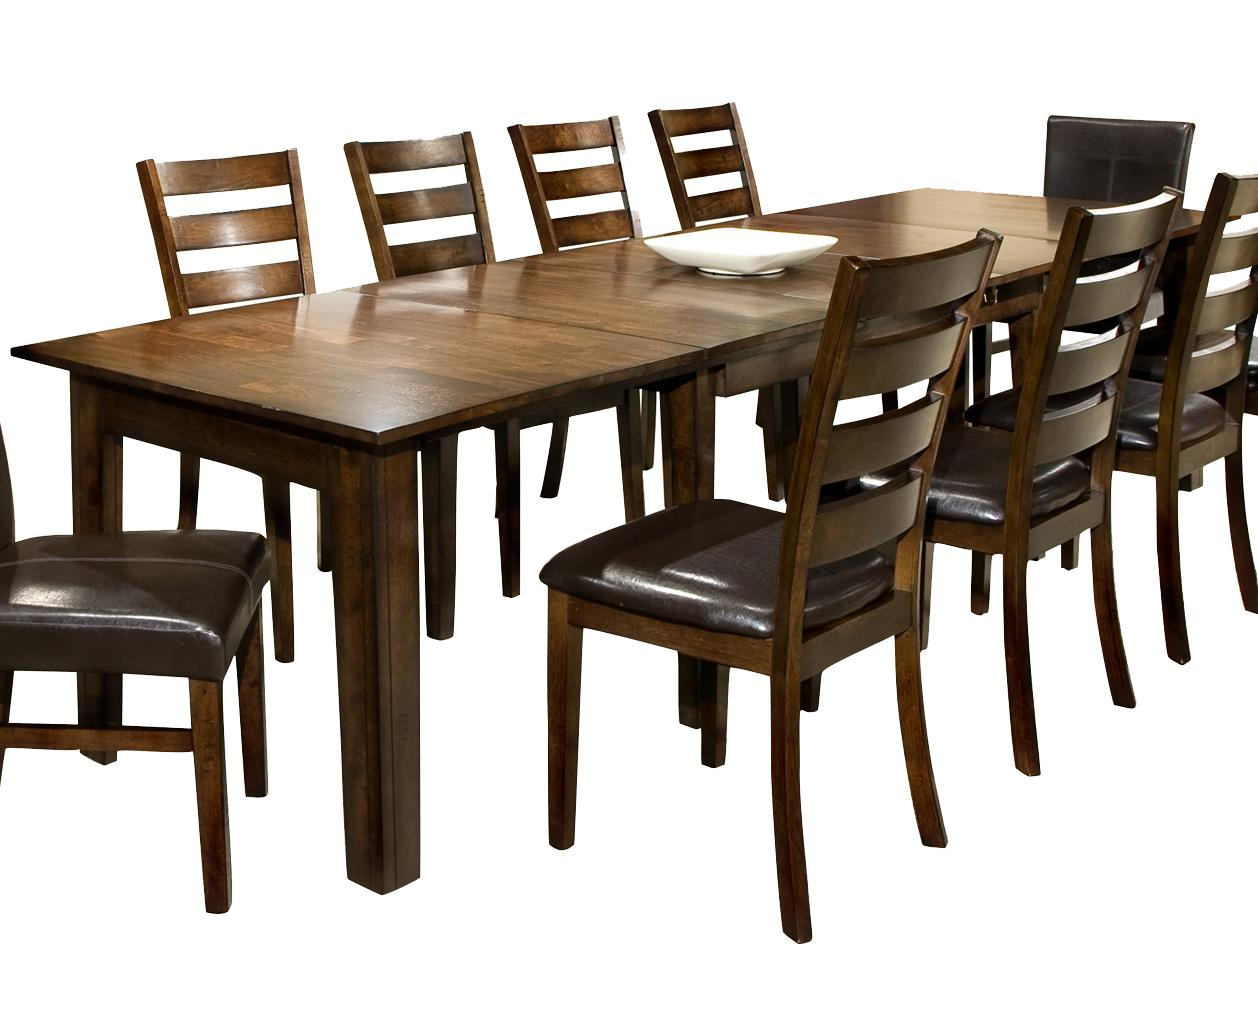 Dining table with 3 leaves